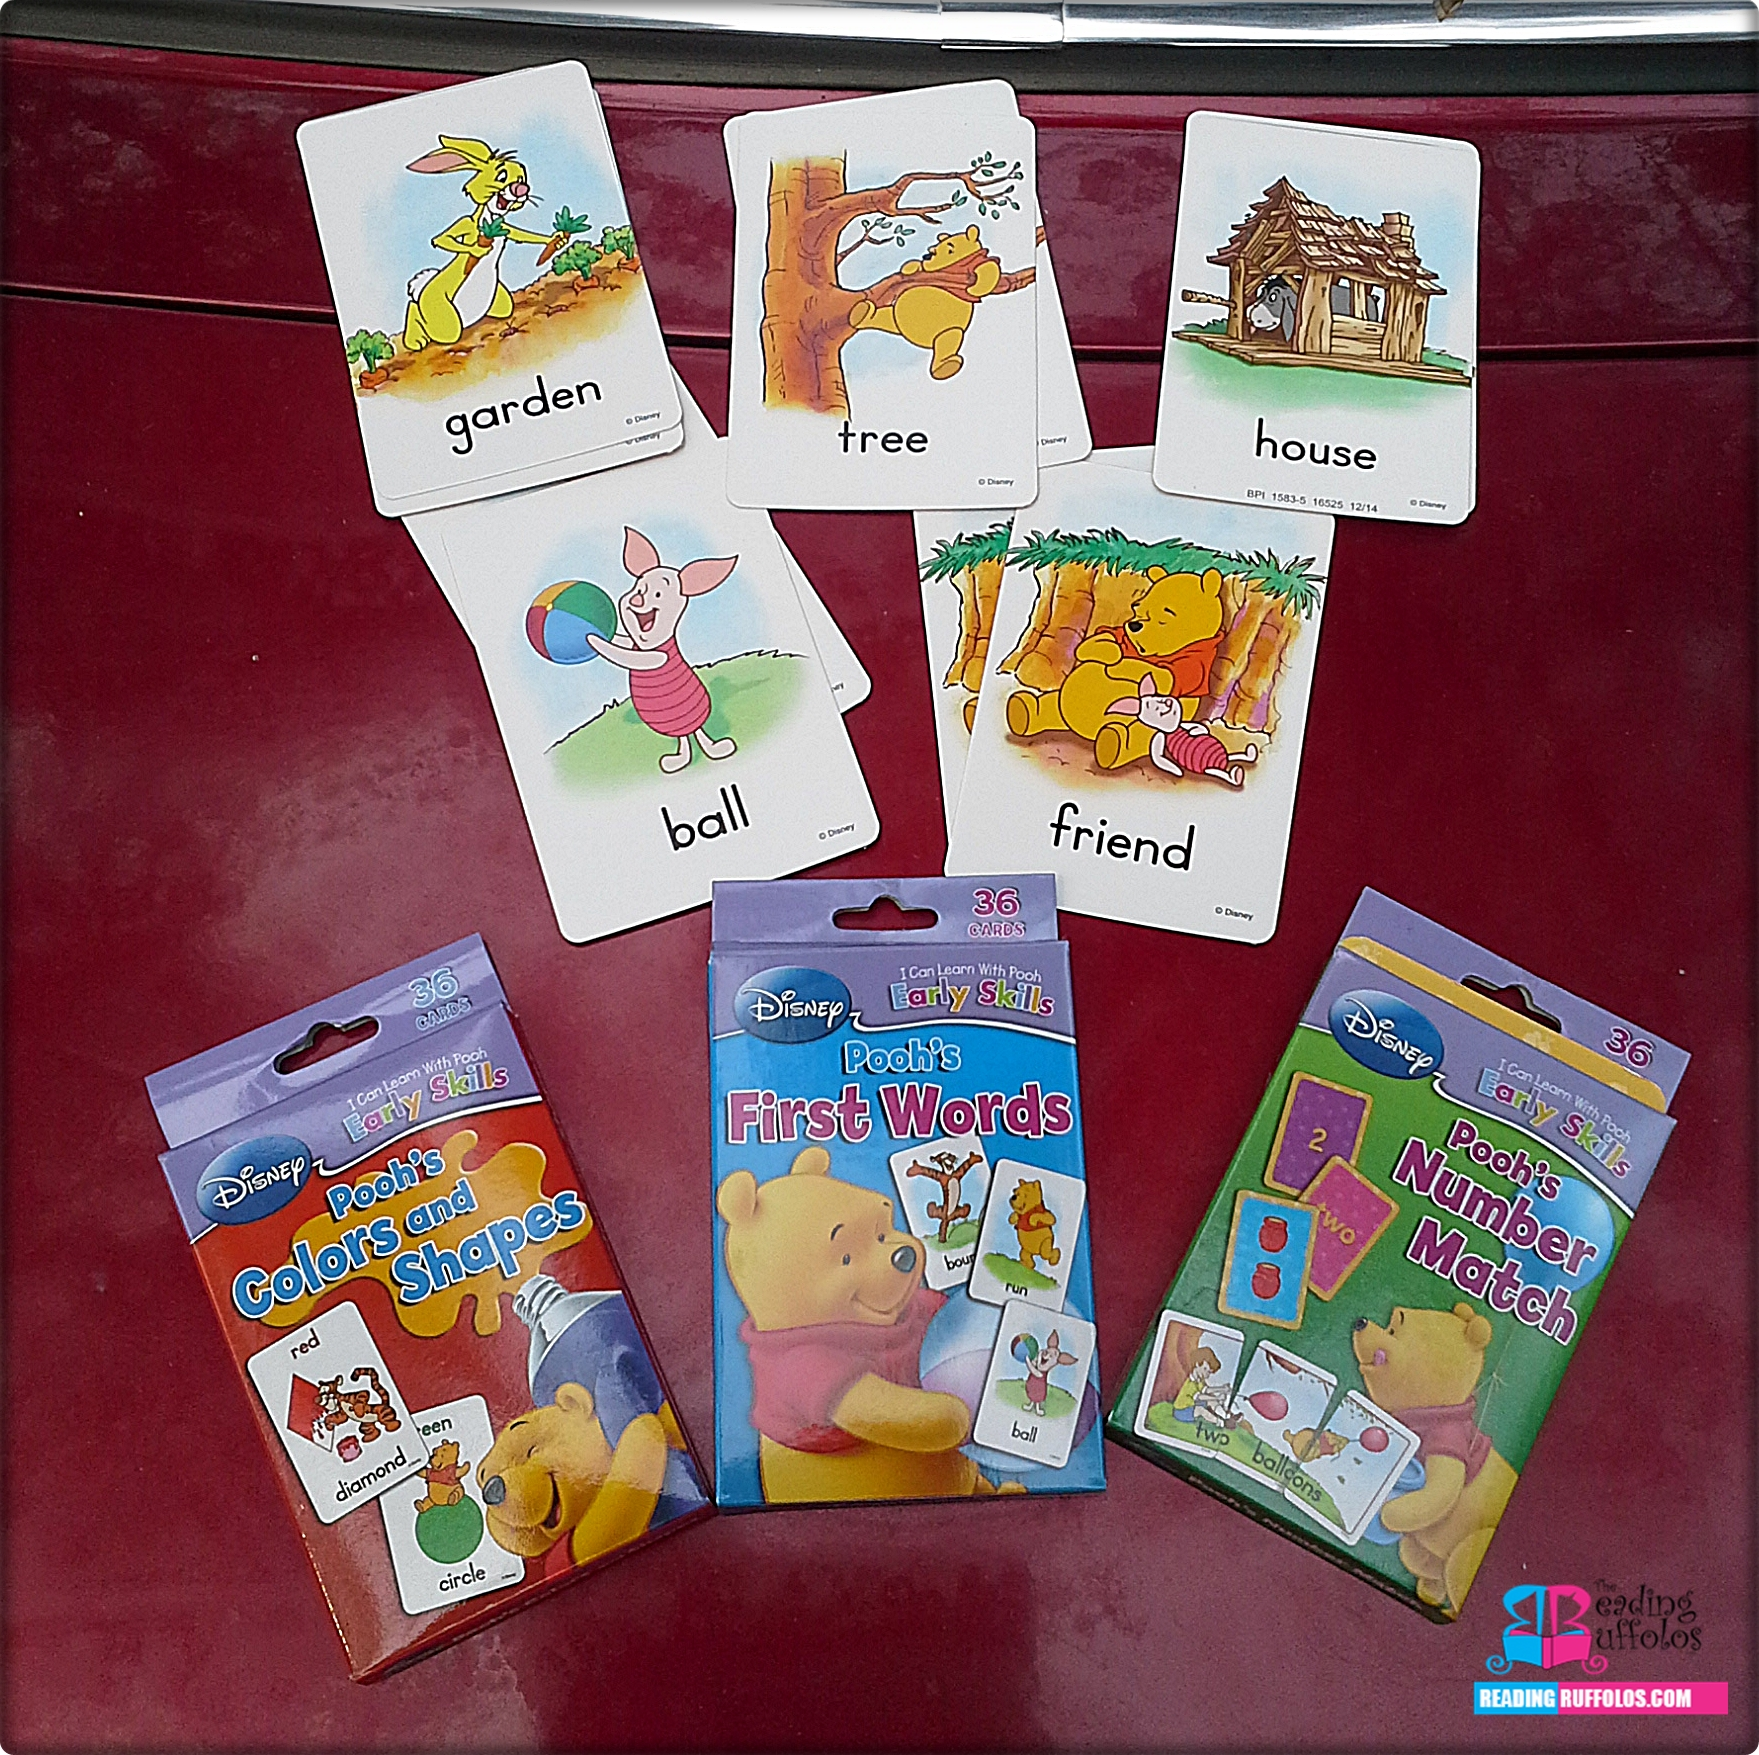 9 educational treasures you'll find at the dollar tree store - flashcards - readingruffolos